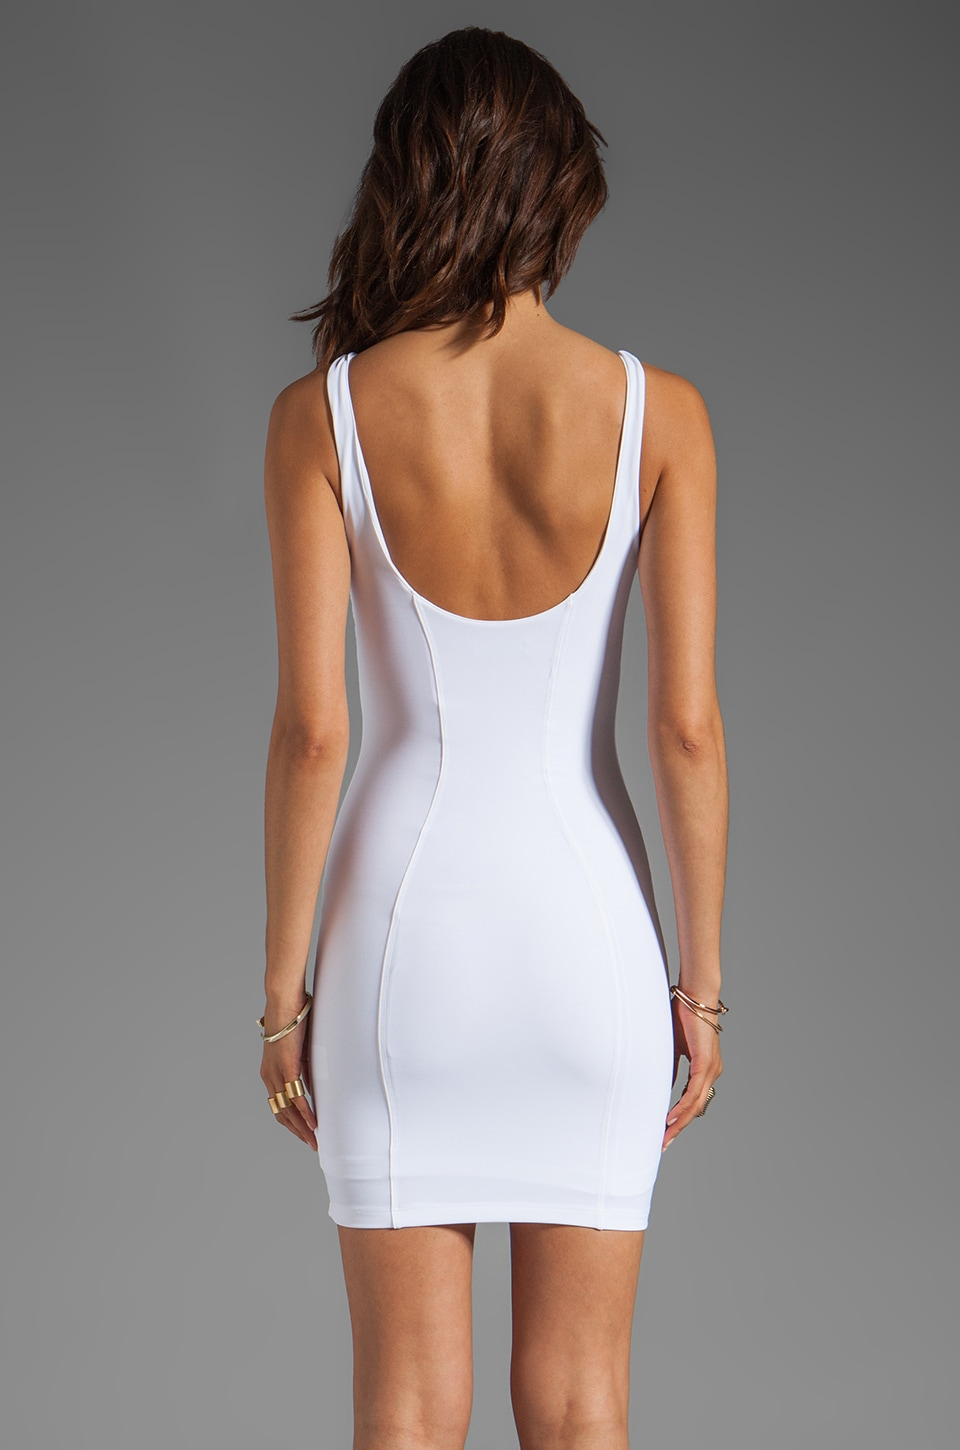 Boulee Cindy Dress in White